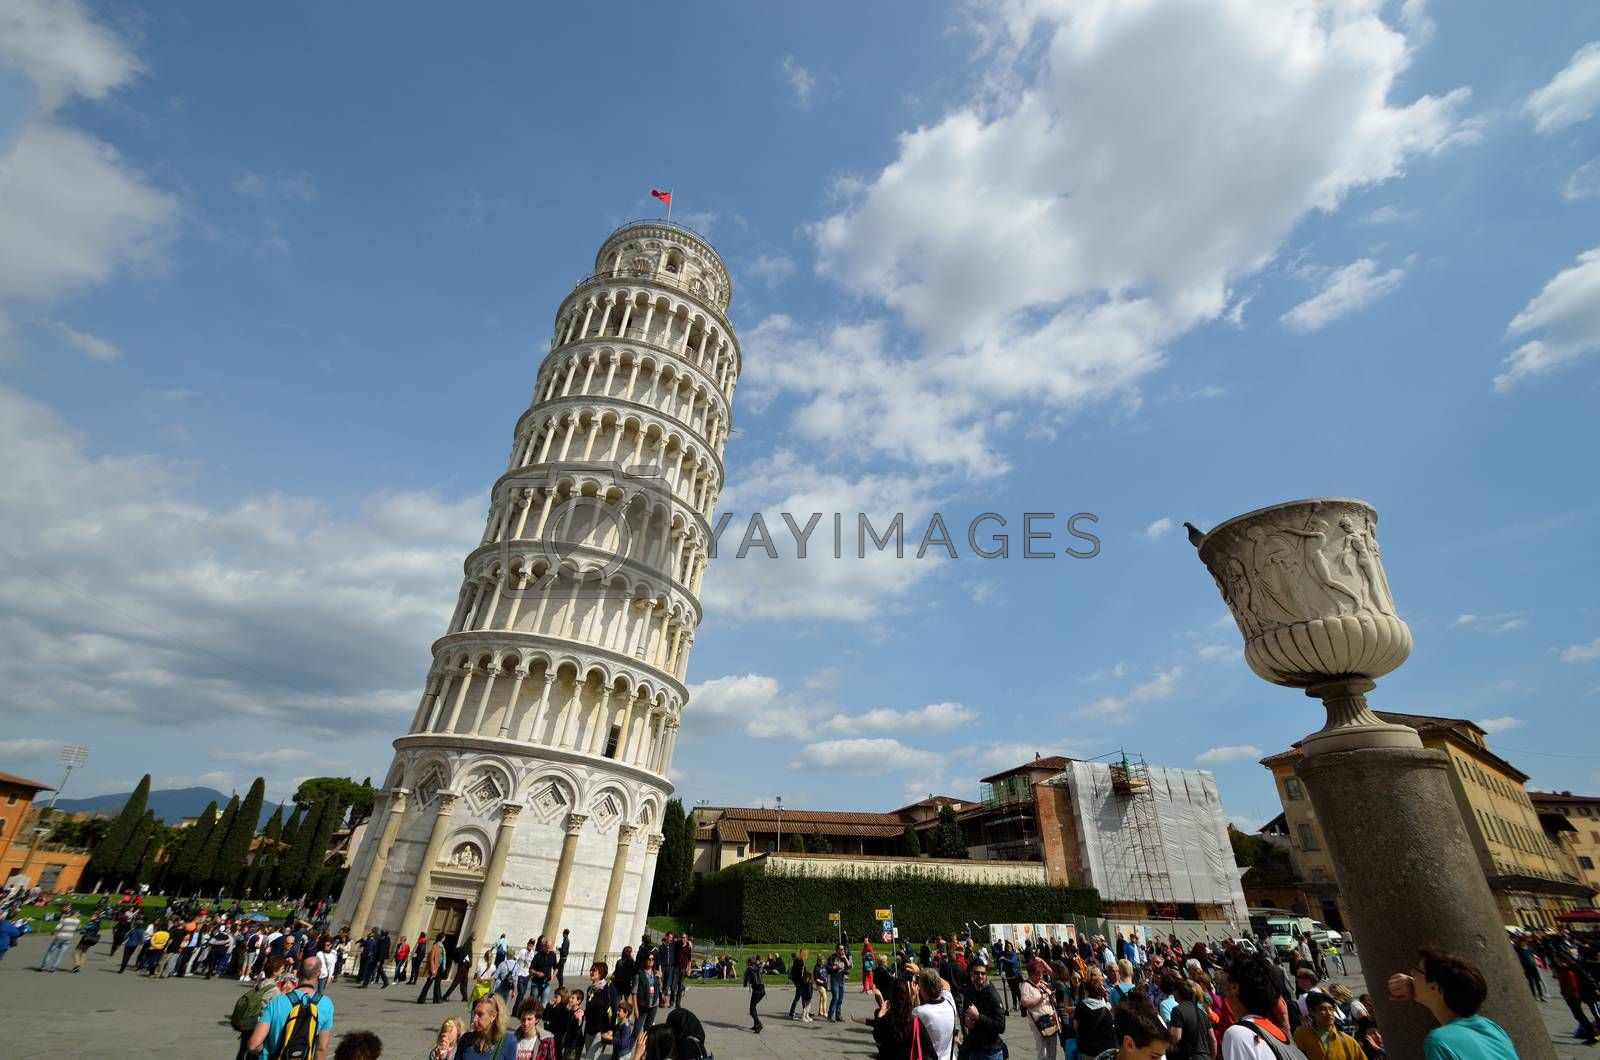 Leaning Tower of Pisa wide angle view